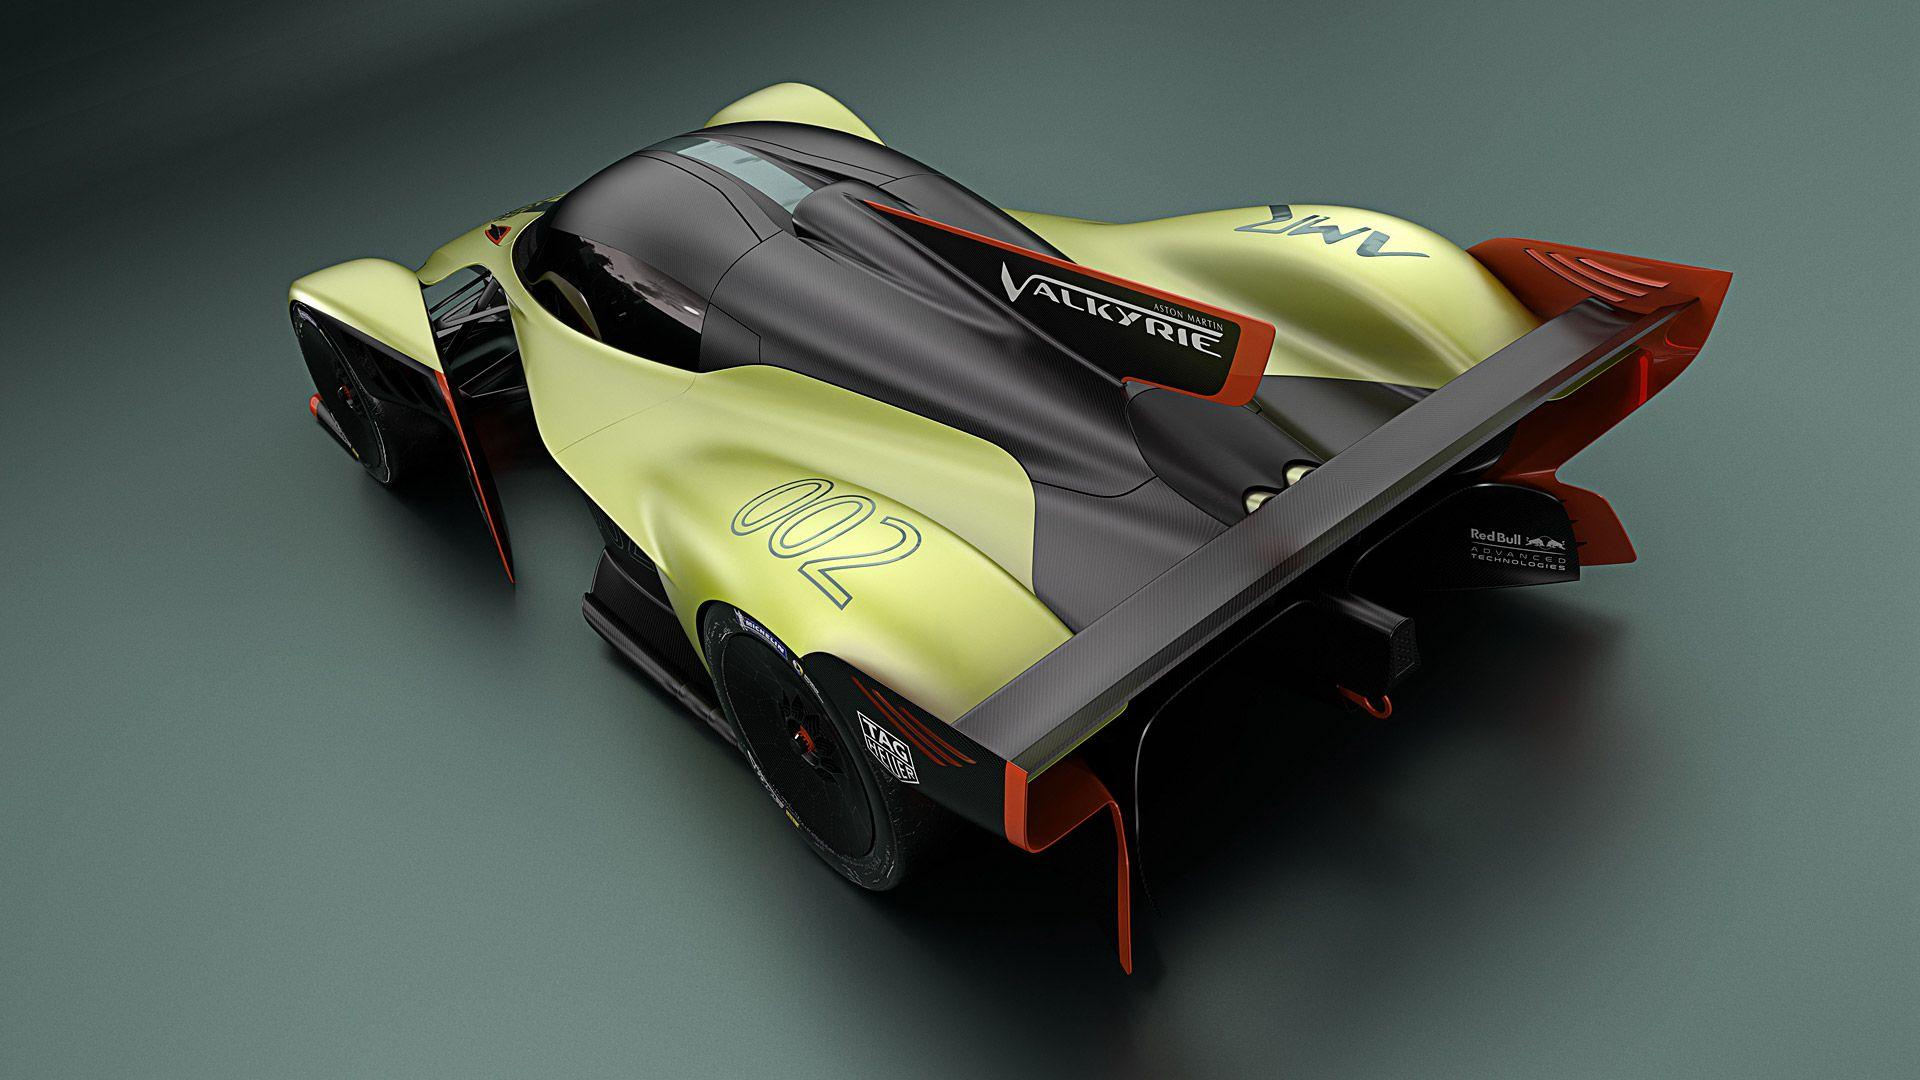 2020 Aston Martin Valkyrie AMR Pro Wallpapers & HD Image